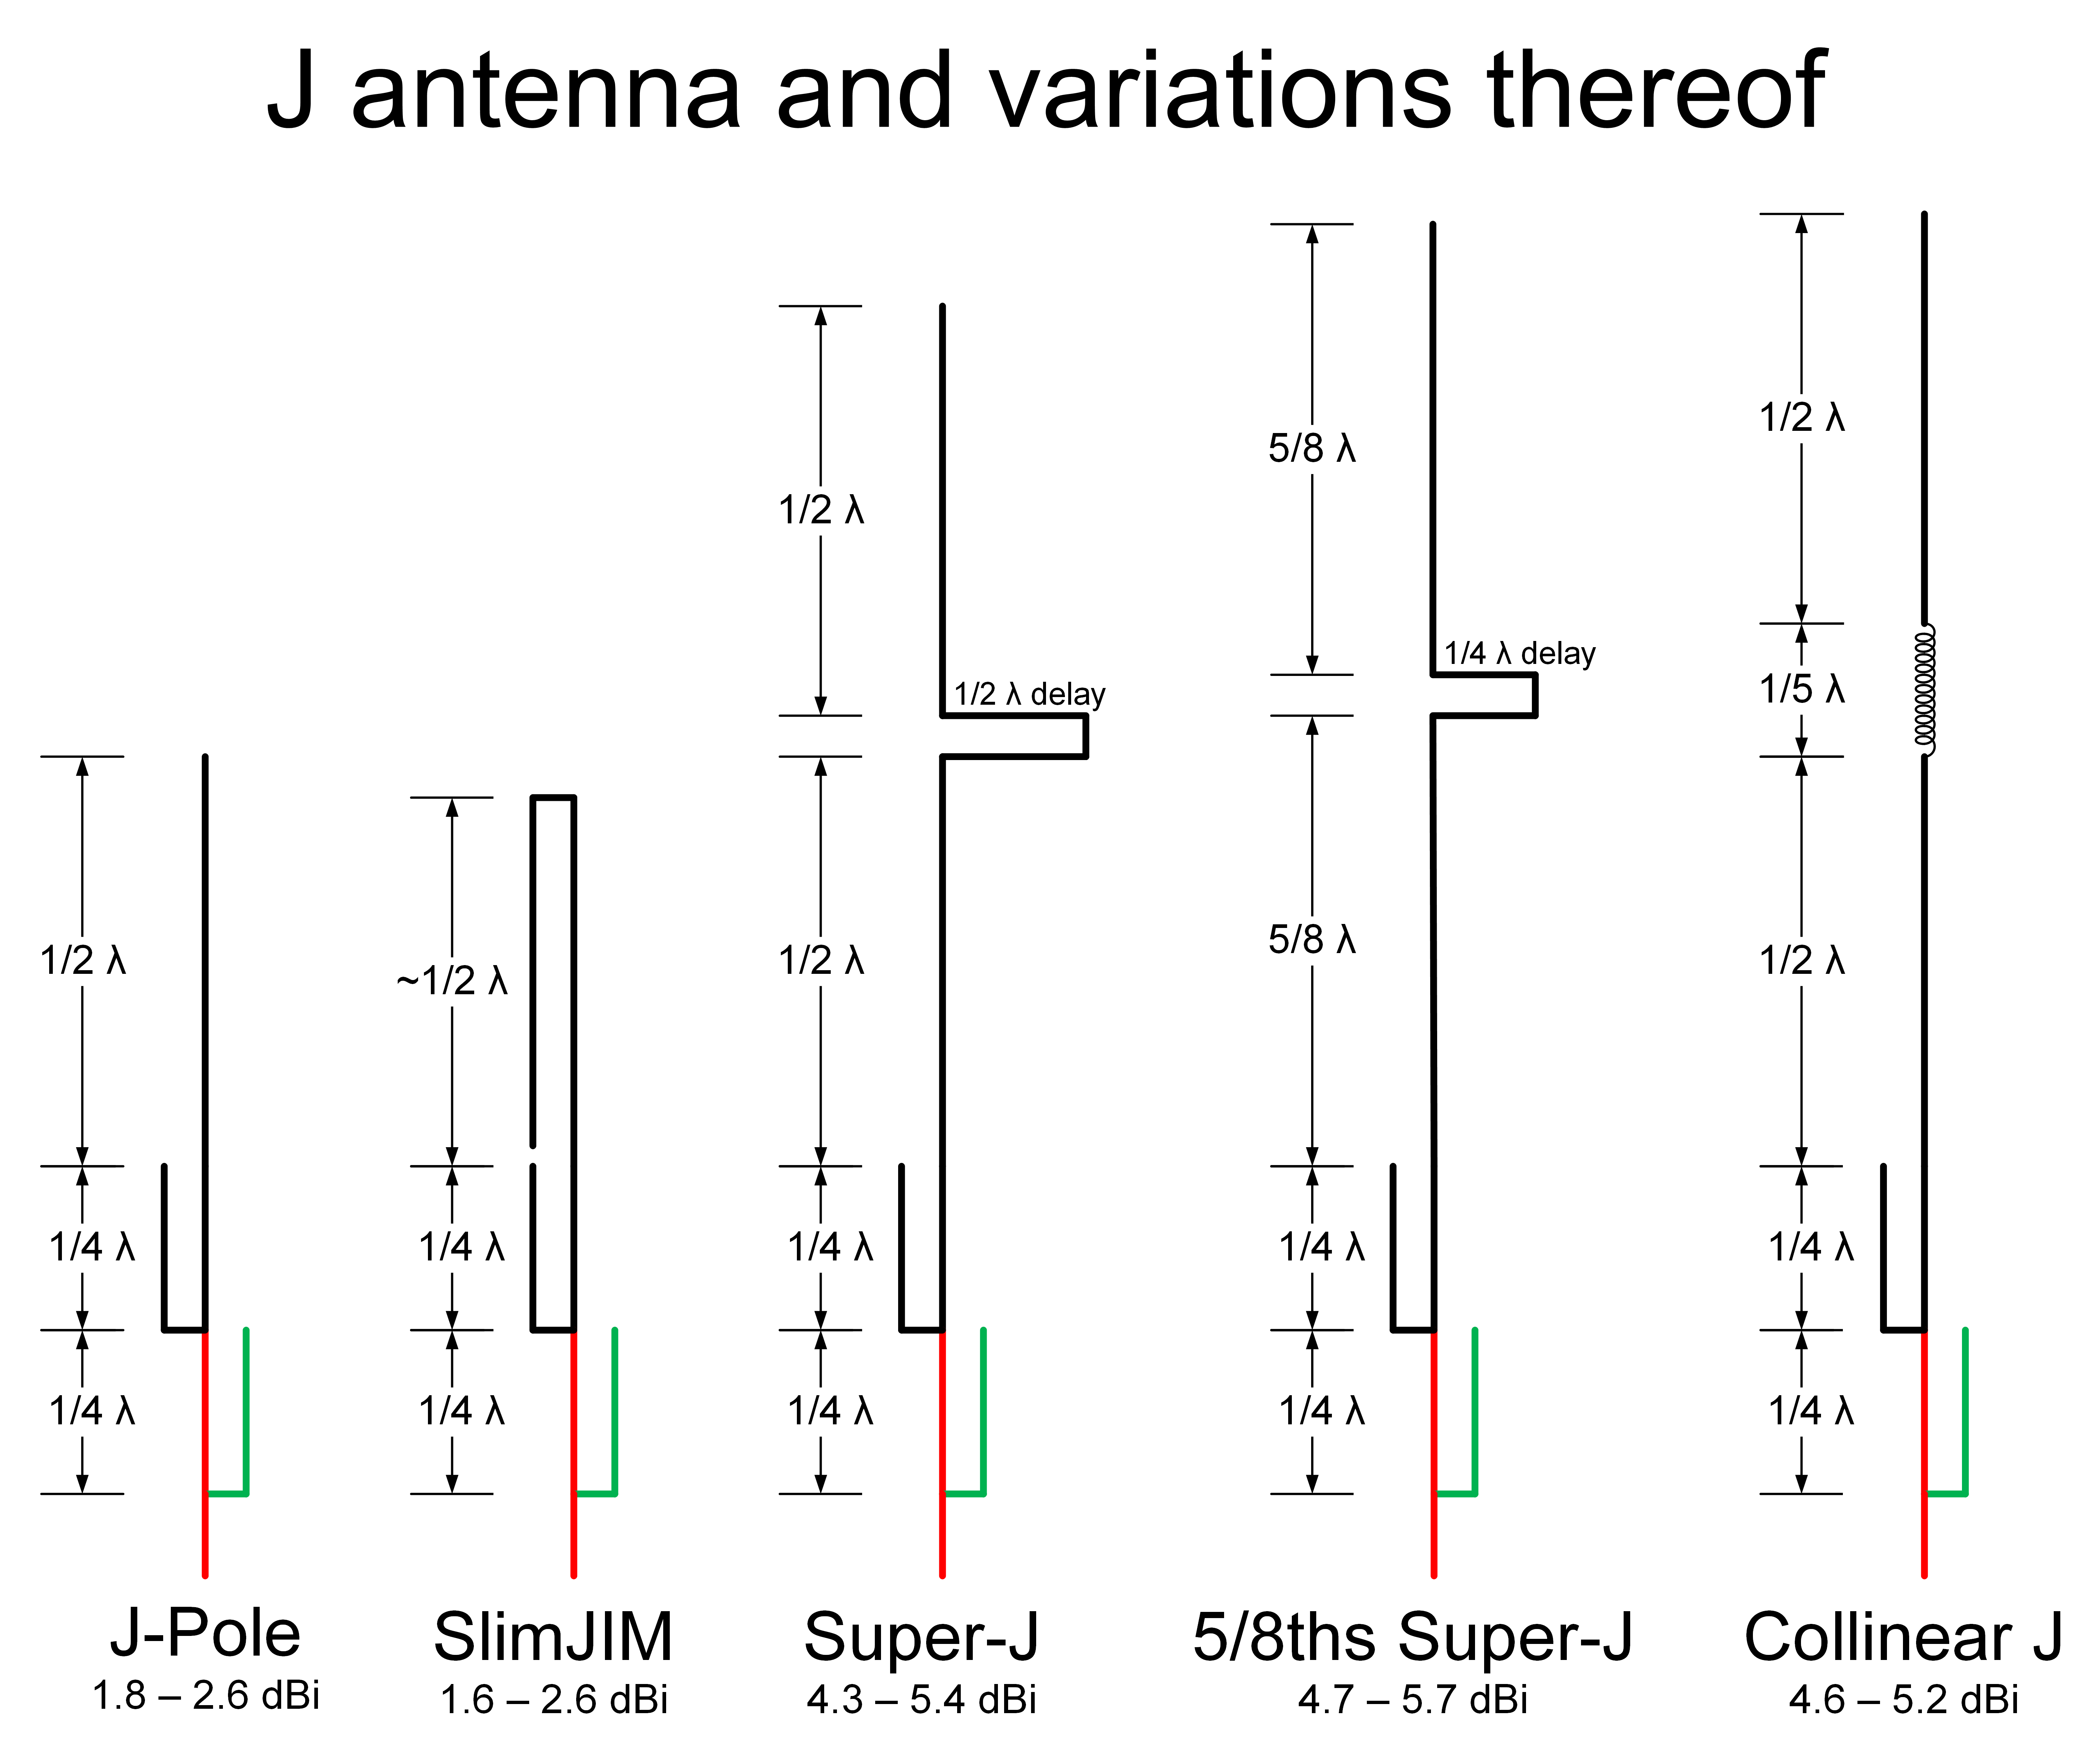 J antenna an variations thereof